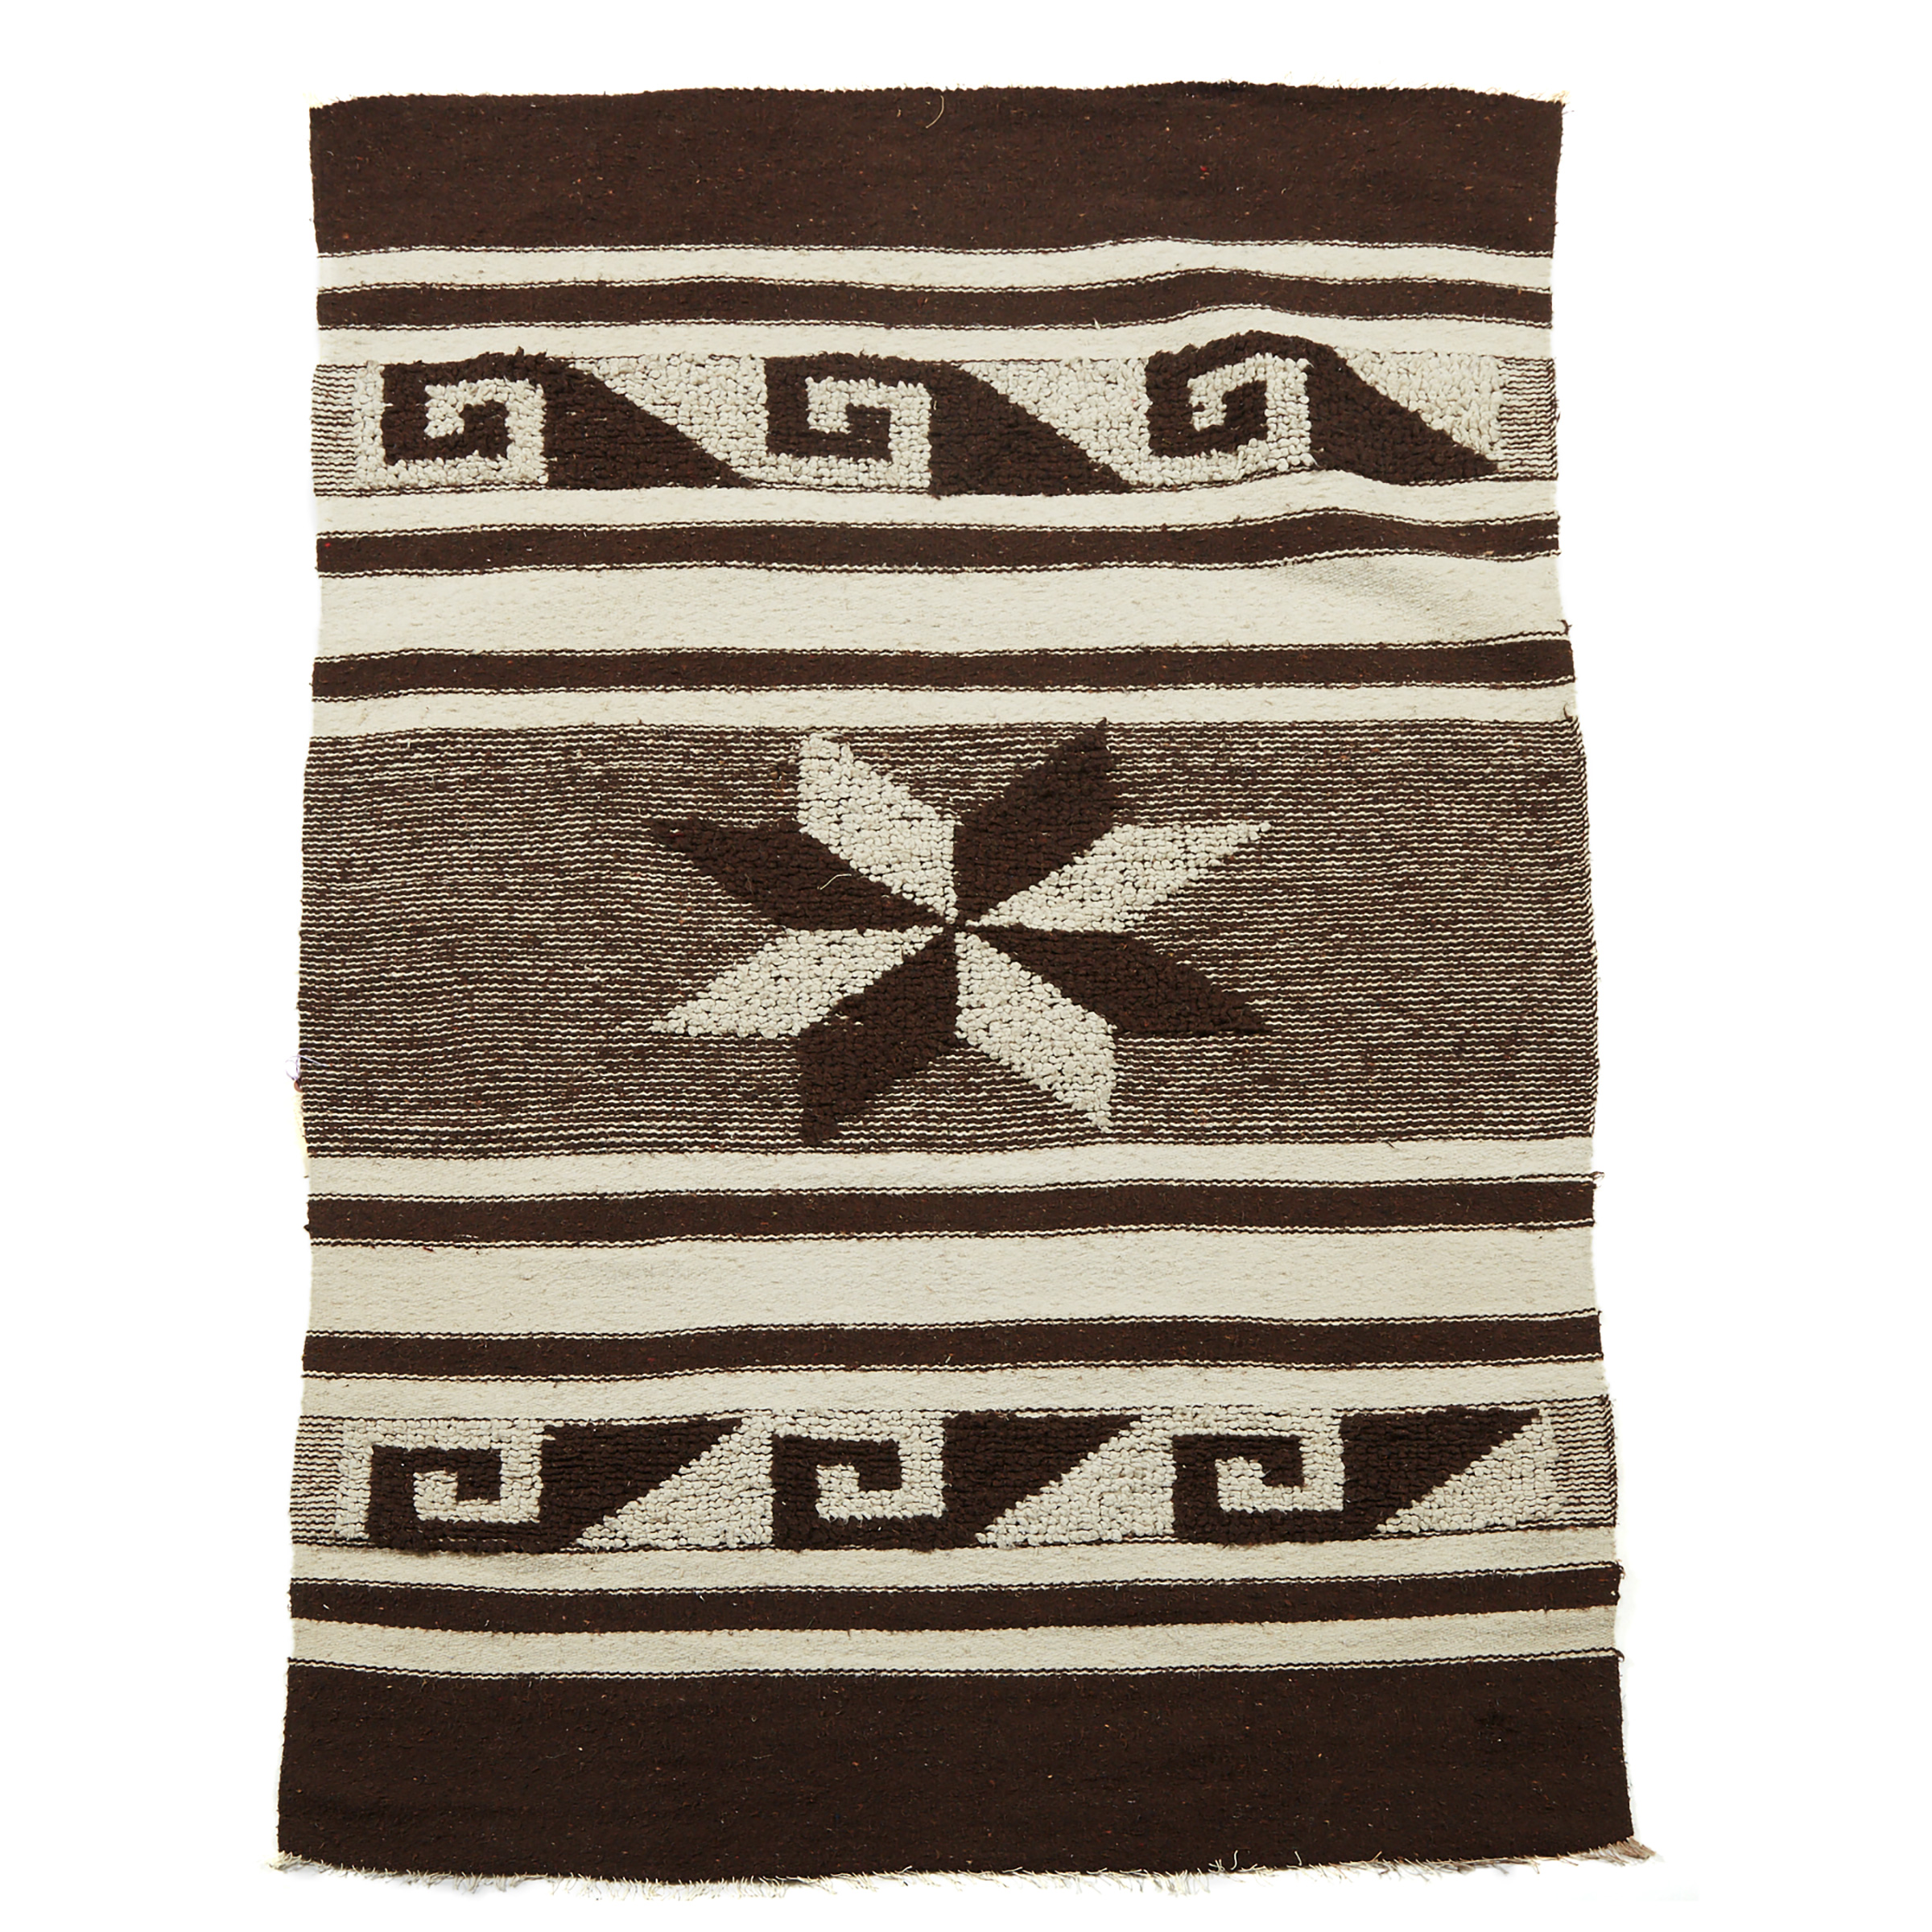 A Peruvian Blanket together with a Mexican Blanket